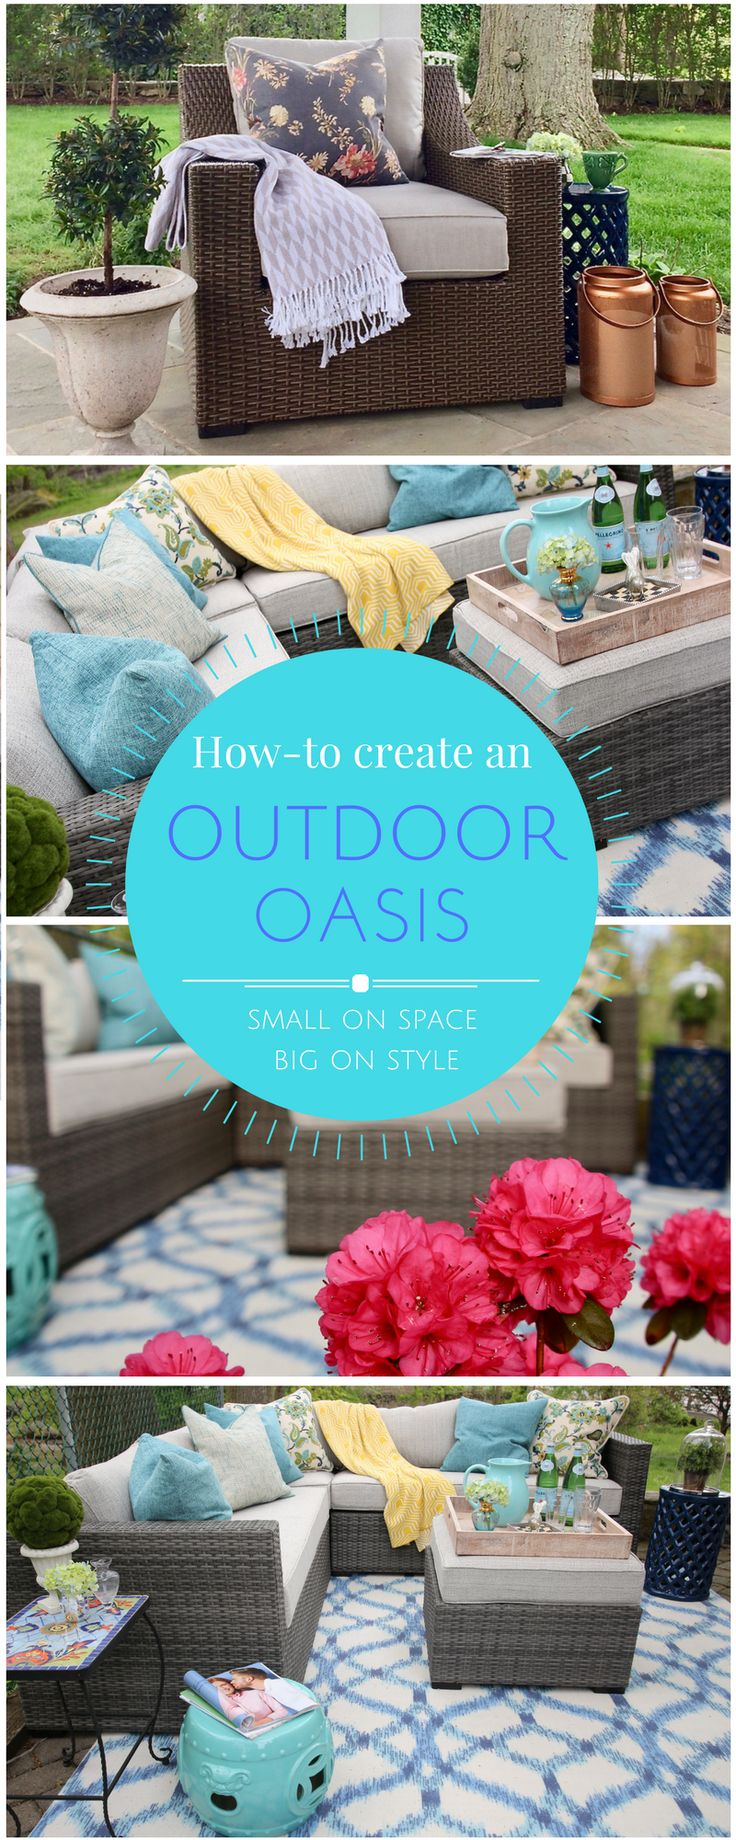 308 best outdoor ideas images on pinterest